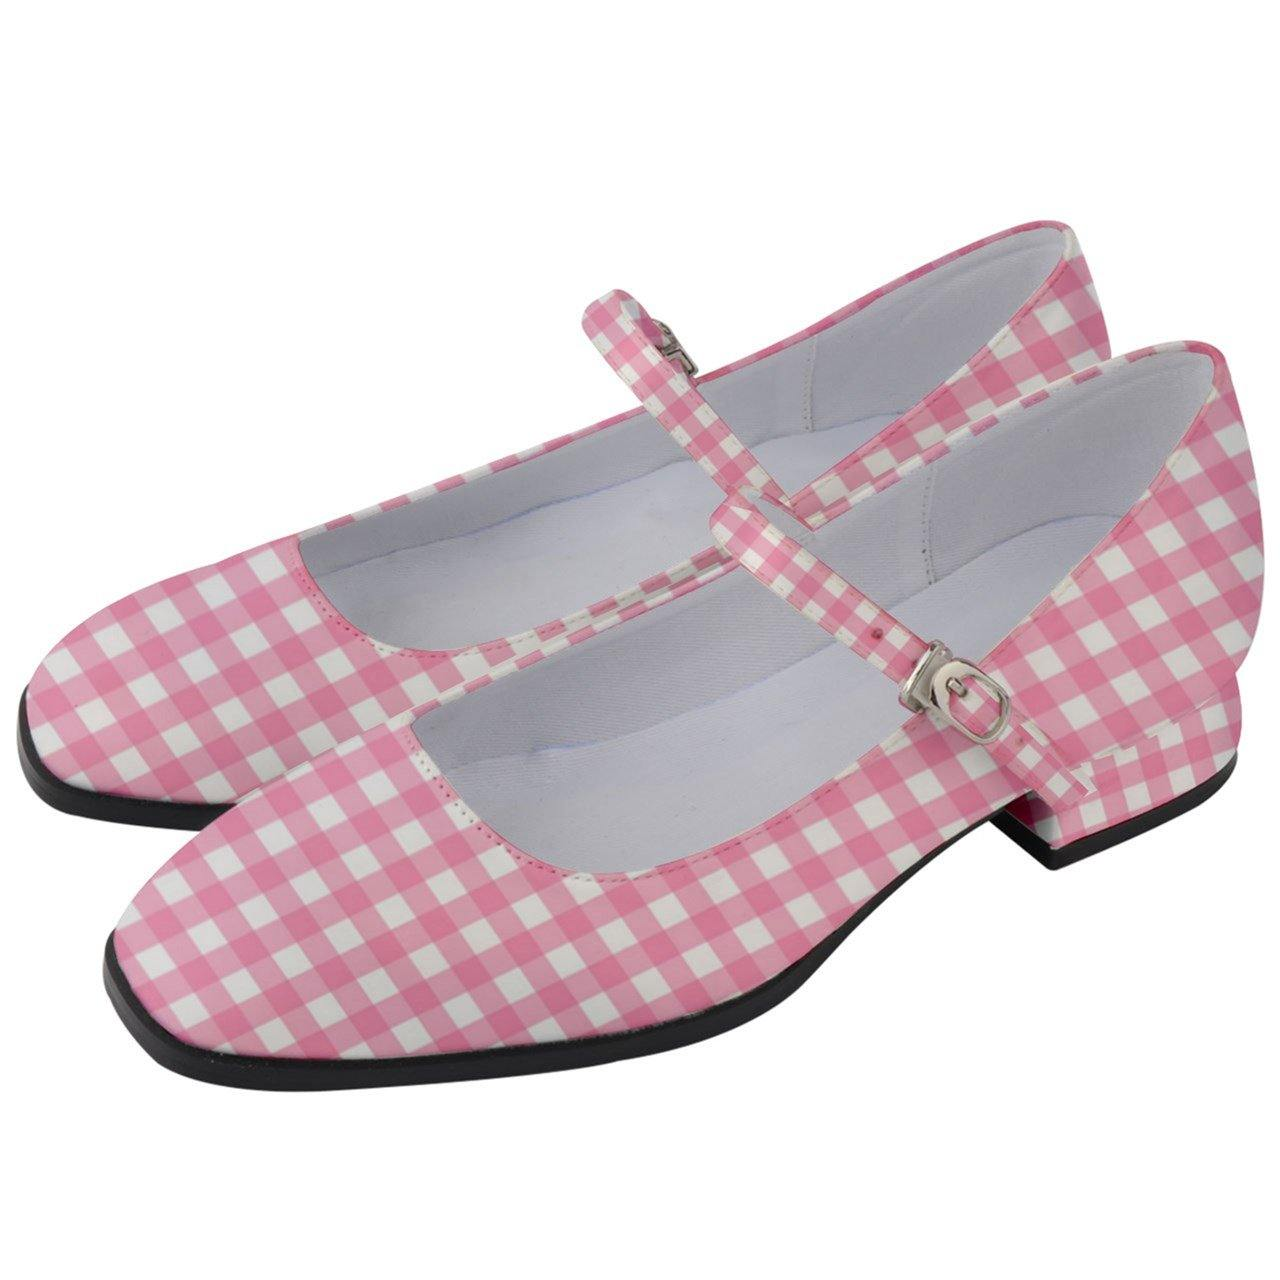 Ellie May Women's Mary Jane Shoes 1